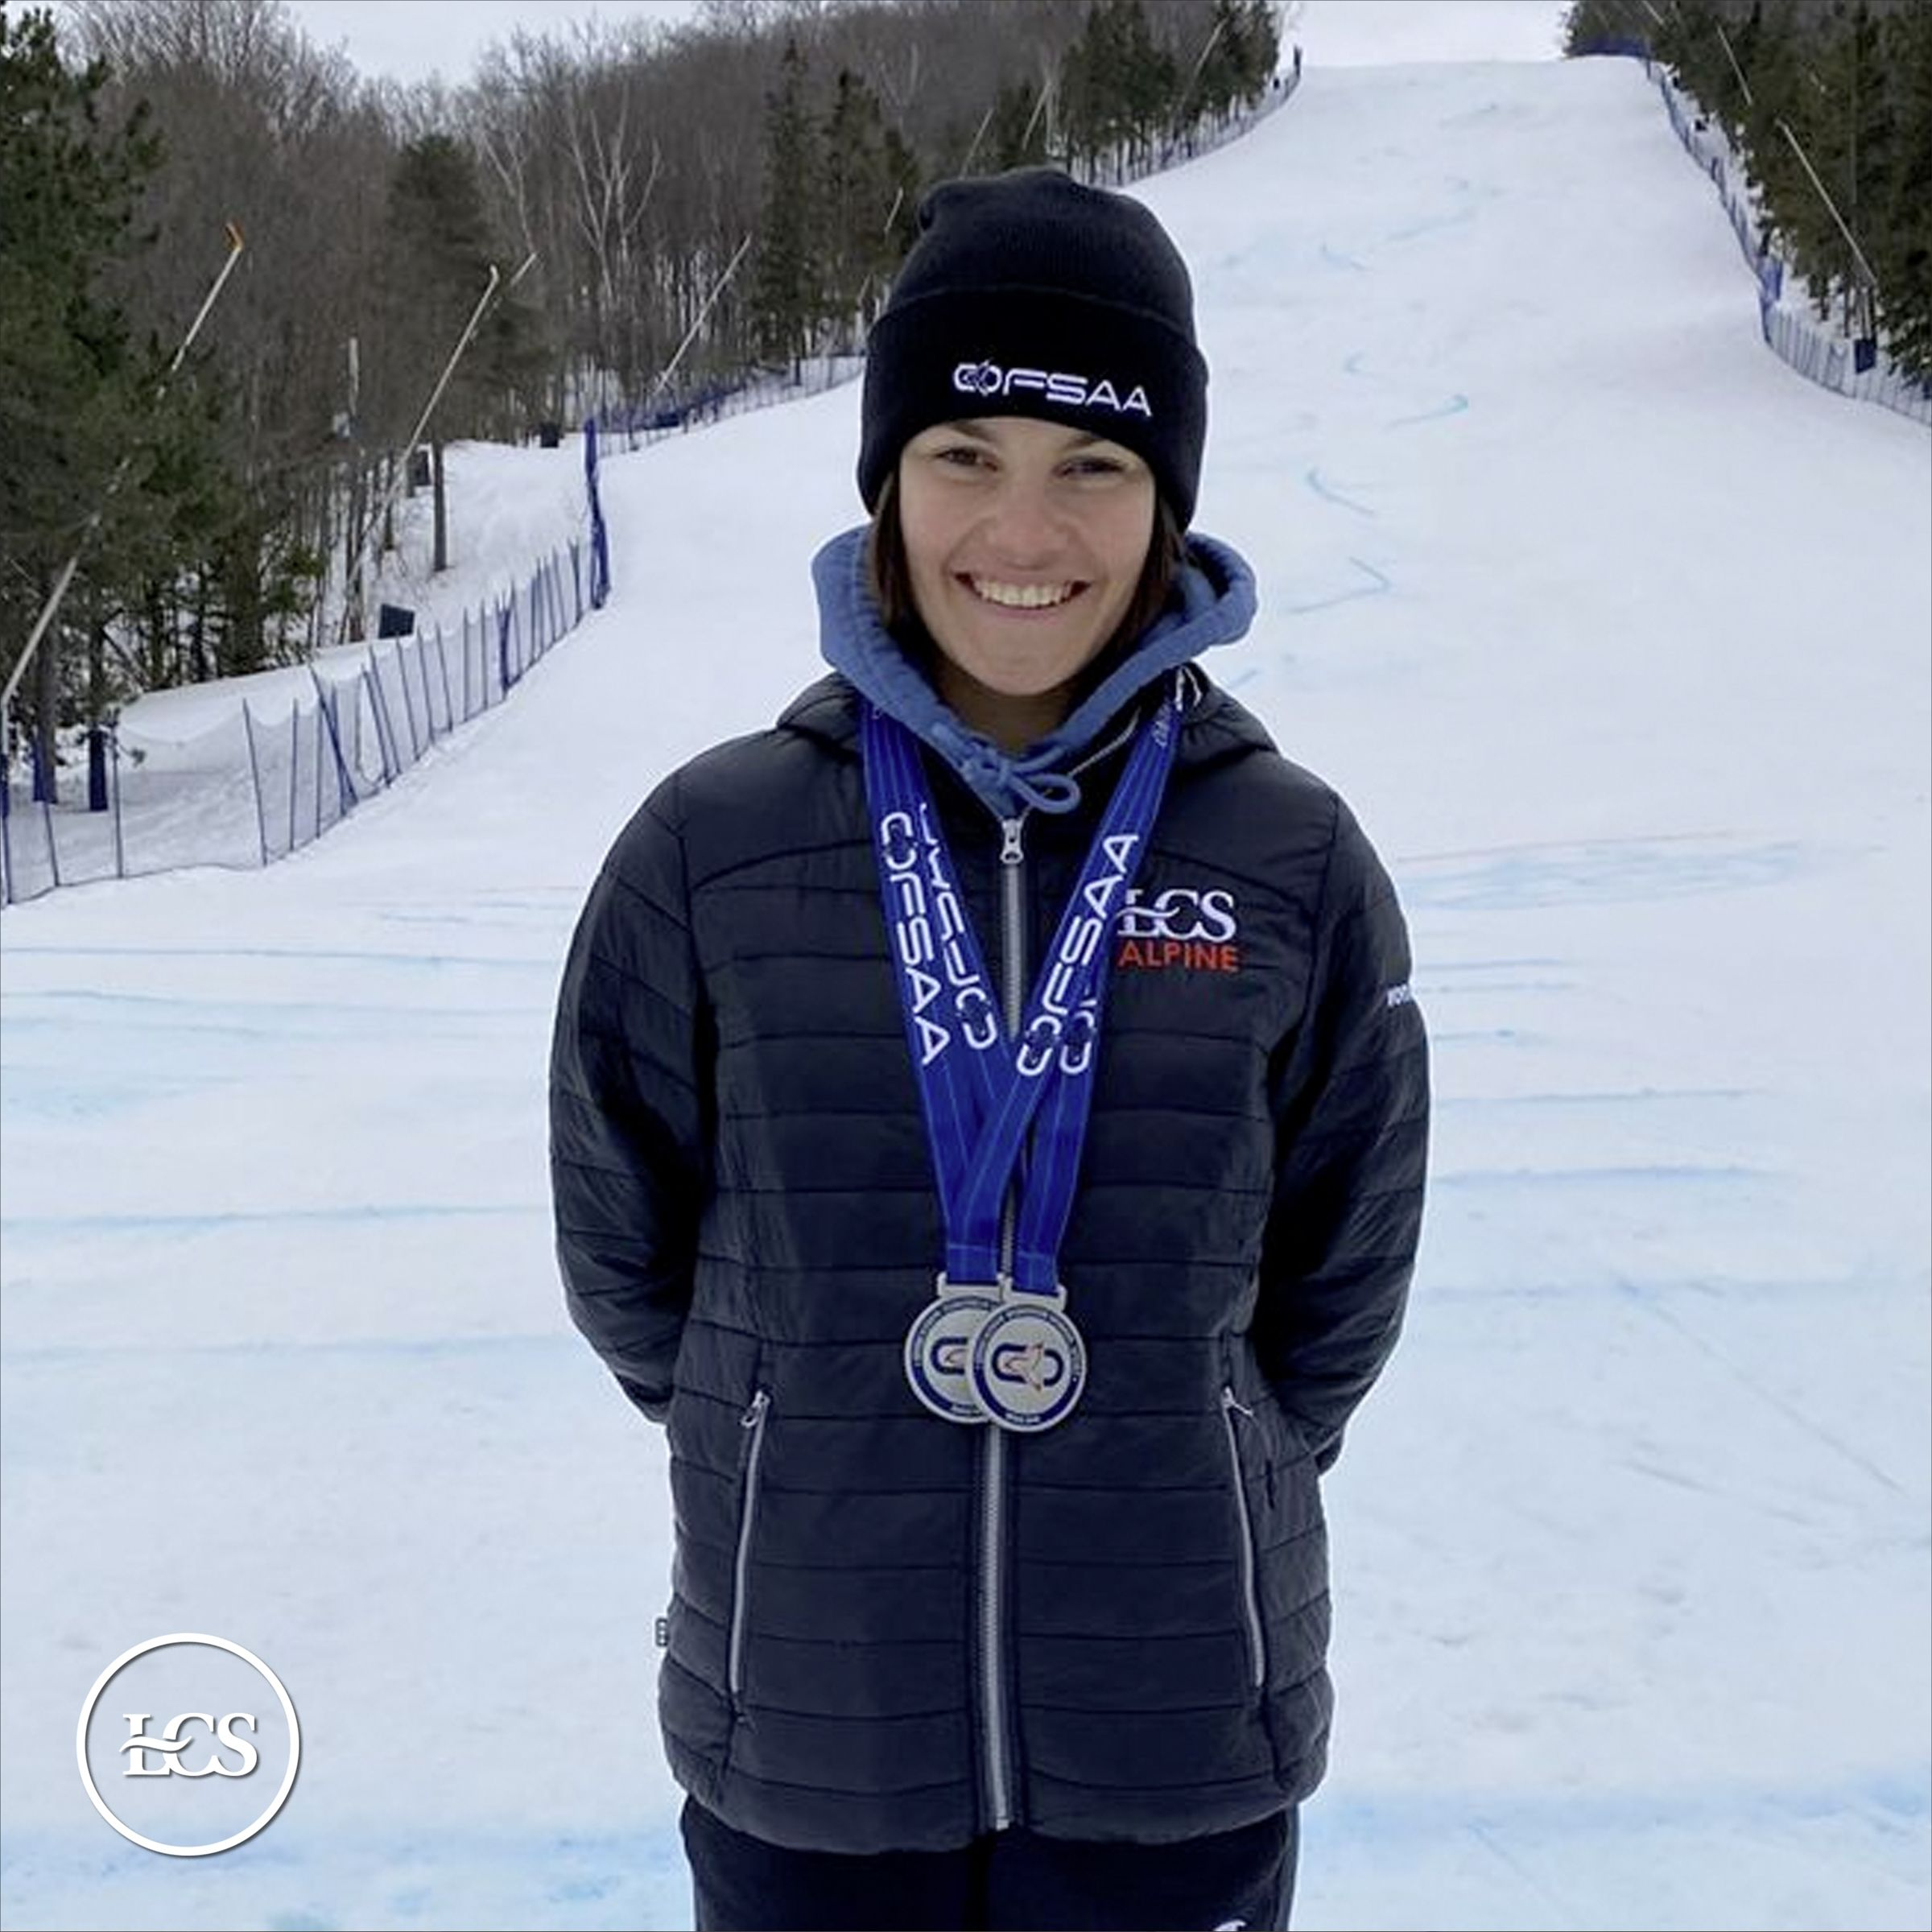 Antonia '23 Wins Double Silver at the OFSAA Alpine Championship